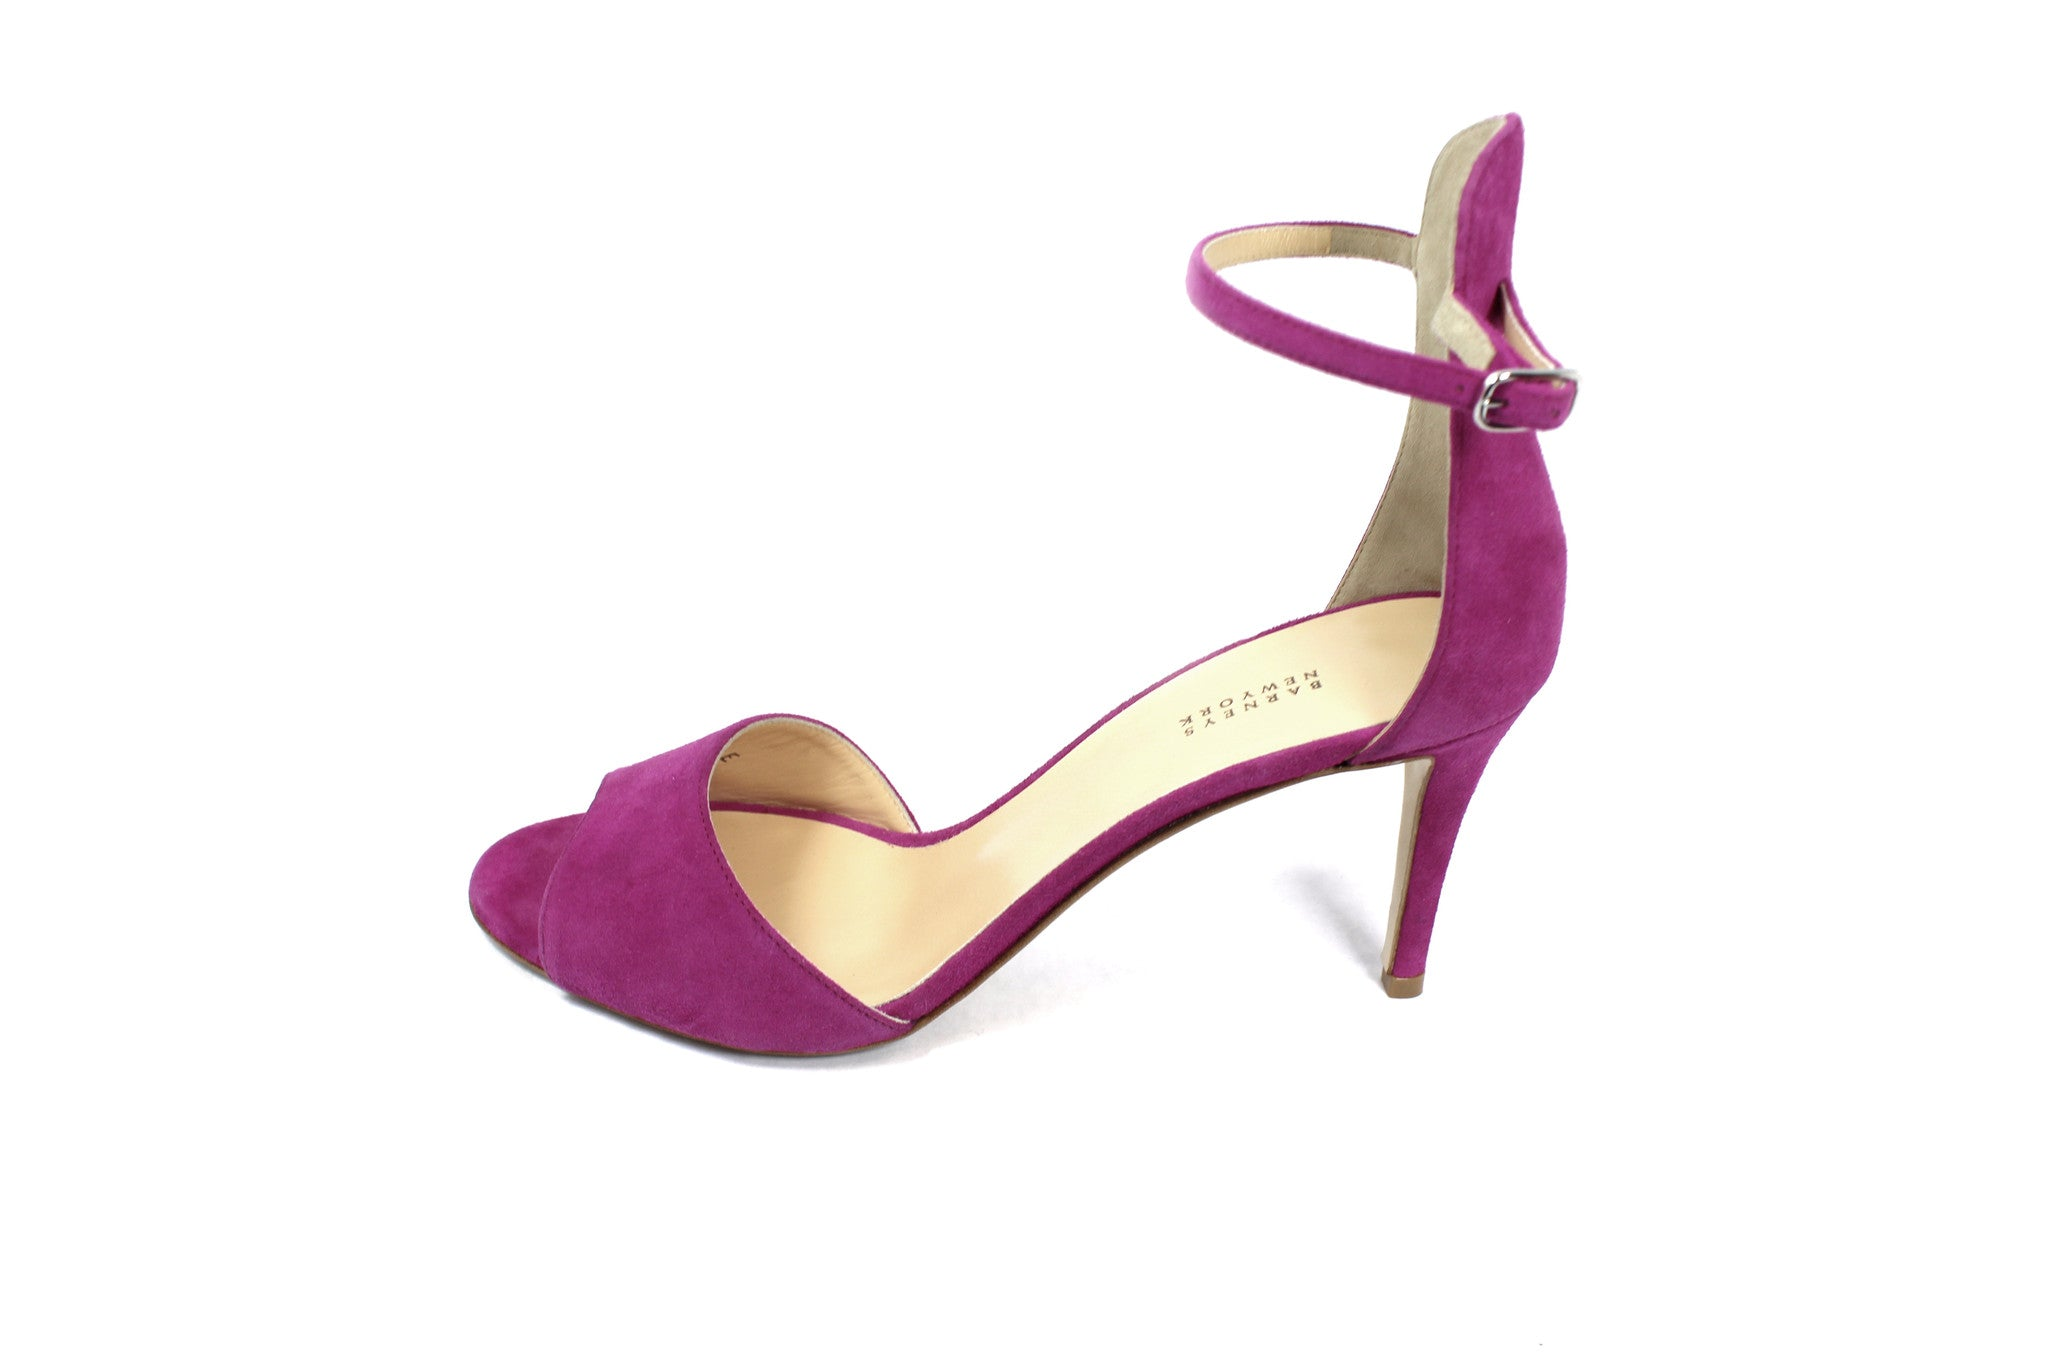 Barneys New York Fuchsia Suede Ankle Strap Sandals (Size 38.5) - Encore Consignment - 4